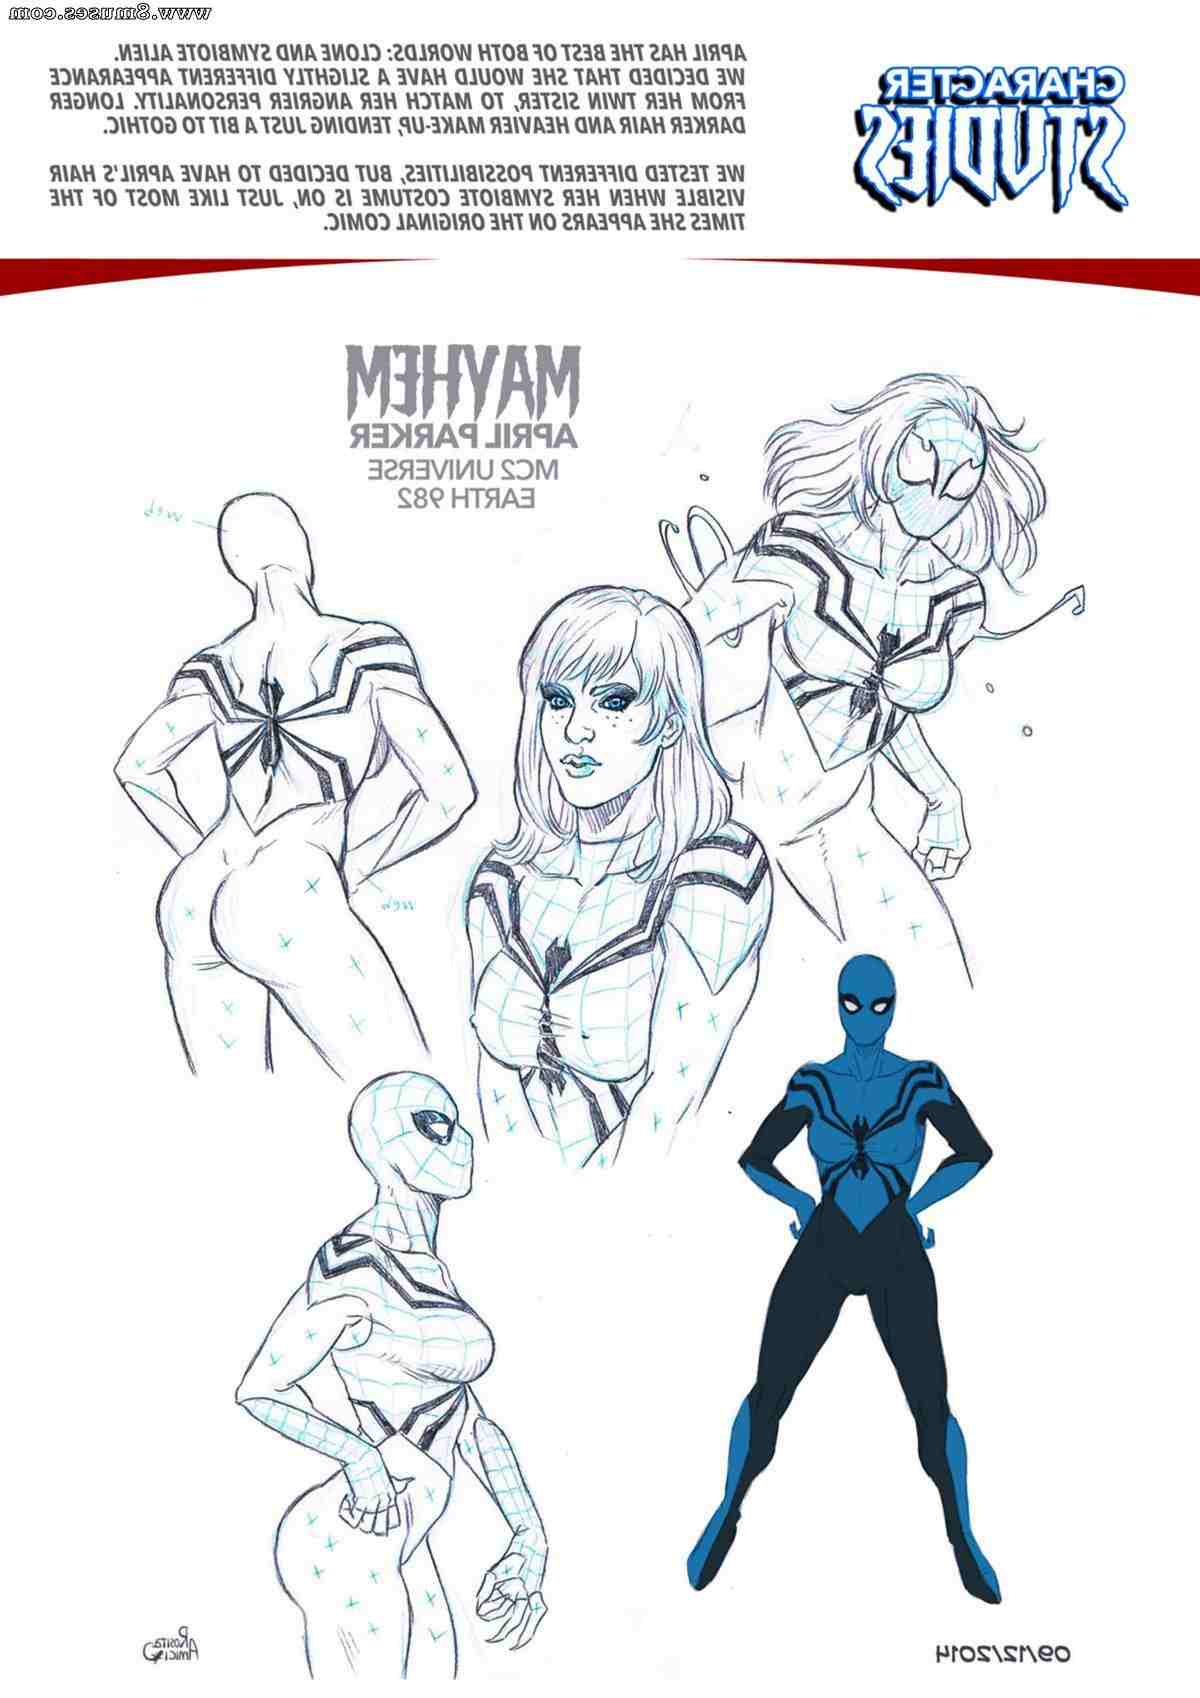 Tracy-Scops-Comics/Mayday-Spidey-2099 Mayday_Spidey_2099__8muses_-_Sex_and_Porn_Comics_18.jpg